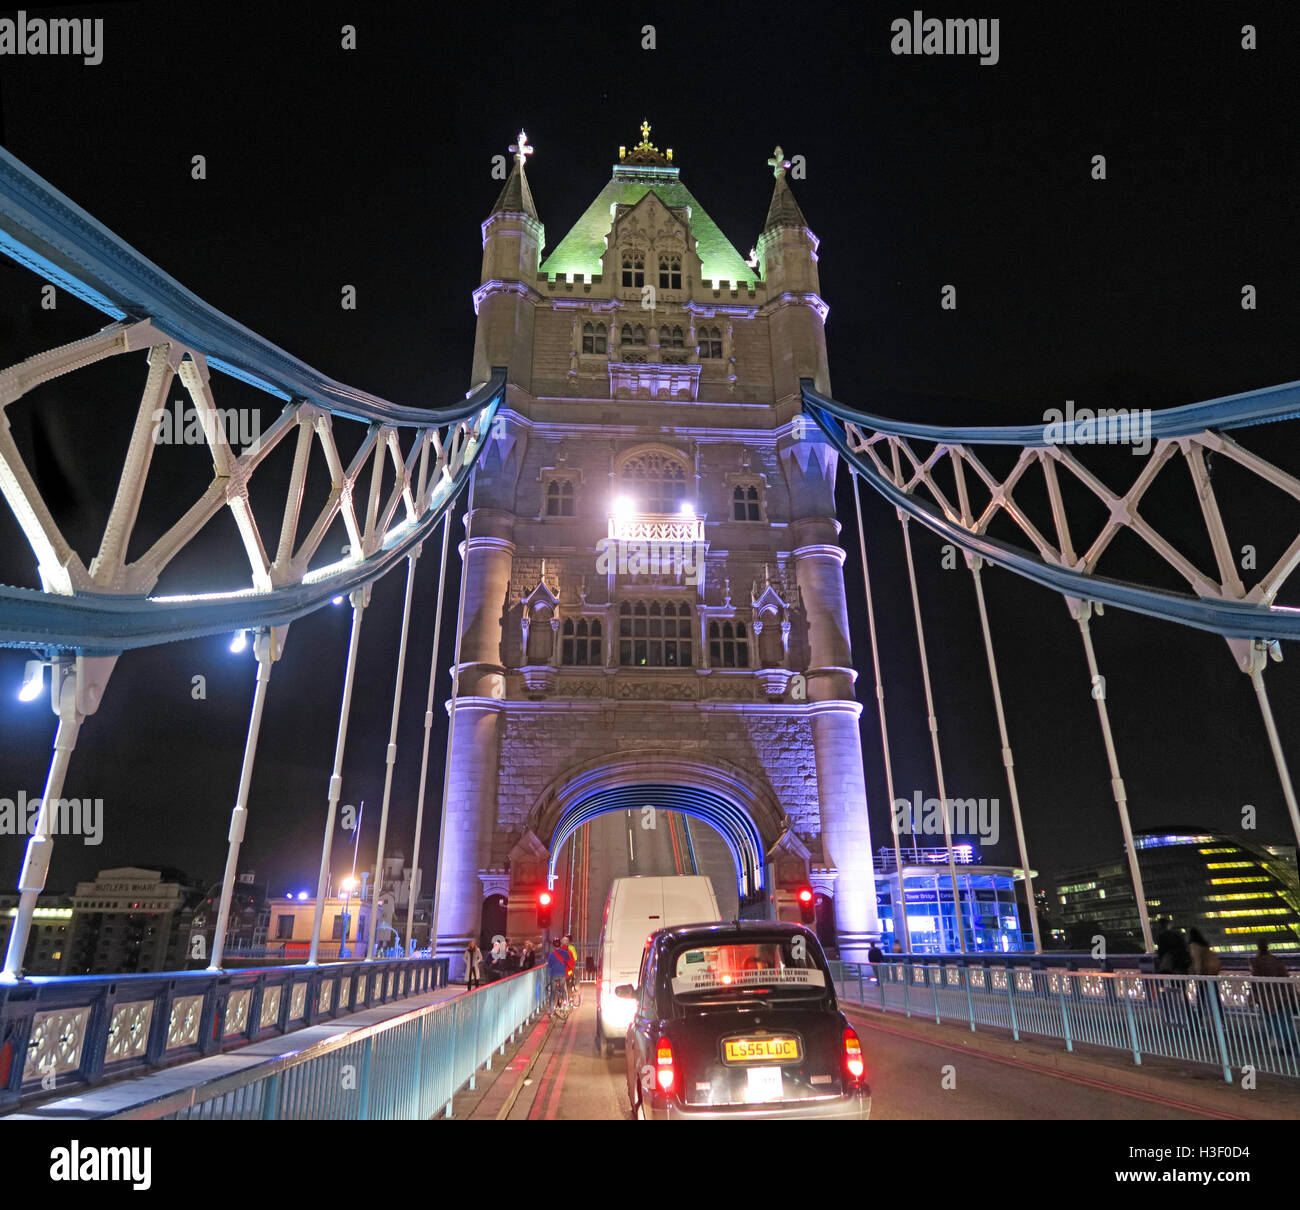 time,nighttime,night,dusk,shot,over,the,Thames,LDN,London,England,with,traditional,black,taxi,cab,cabby,delay,delayed,repair,transport,history,historic,diversion,restriction,A100,disruption,Capital,City,raise,Tower Bridge,Night repairs,traffic jam,over the Thames,Congestion Charge zone,GoTonySmith,@HotpixUK,Tony,Smith,different,unique,TFL,planning,major,essential,maintenance,works,2016,2017,travel,icon,iconic,Congestion,Charge,zone,raised,open,opened,delay,delays,delayed.late,later,Buy Pictures of,Buy Images Of,Images of,Stock Images,Tony Smith,Photo of,Tower Bridge closure,Tower Bridge Road,Temporary restrictions